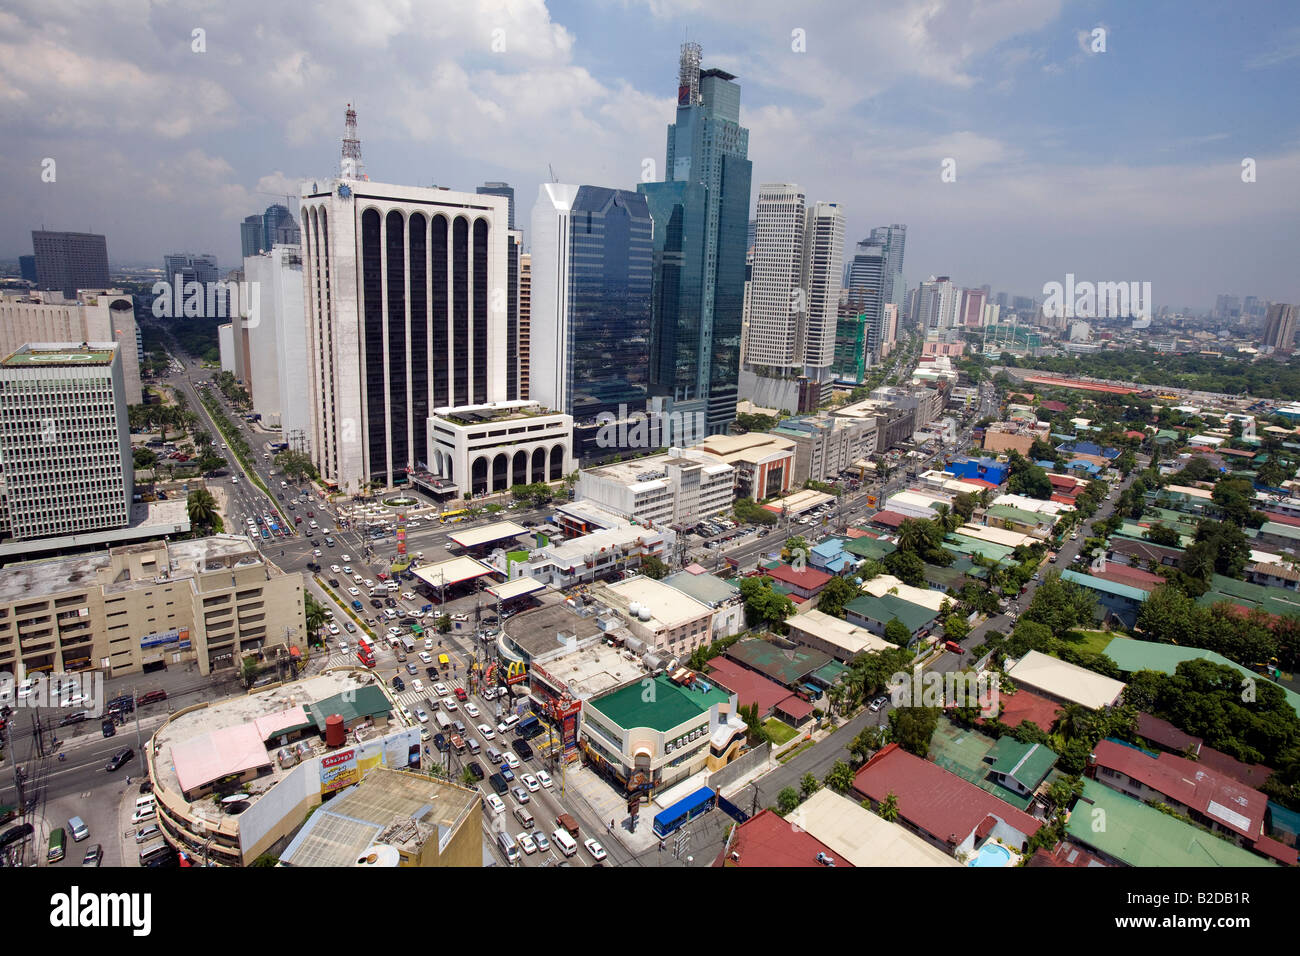 A view of makati city metro manila philippines stock photo a view of makati city metro manila philippines sciox Image collections